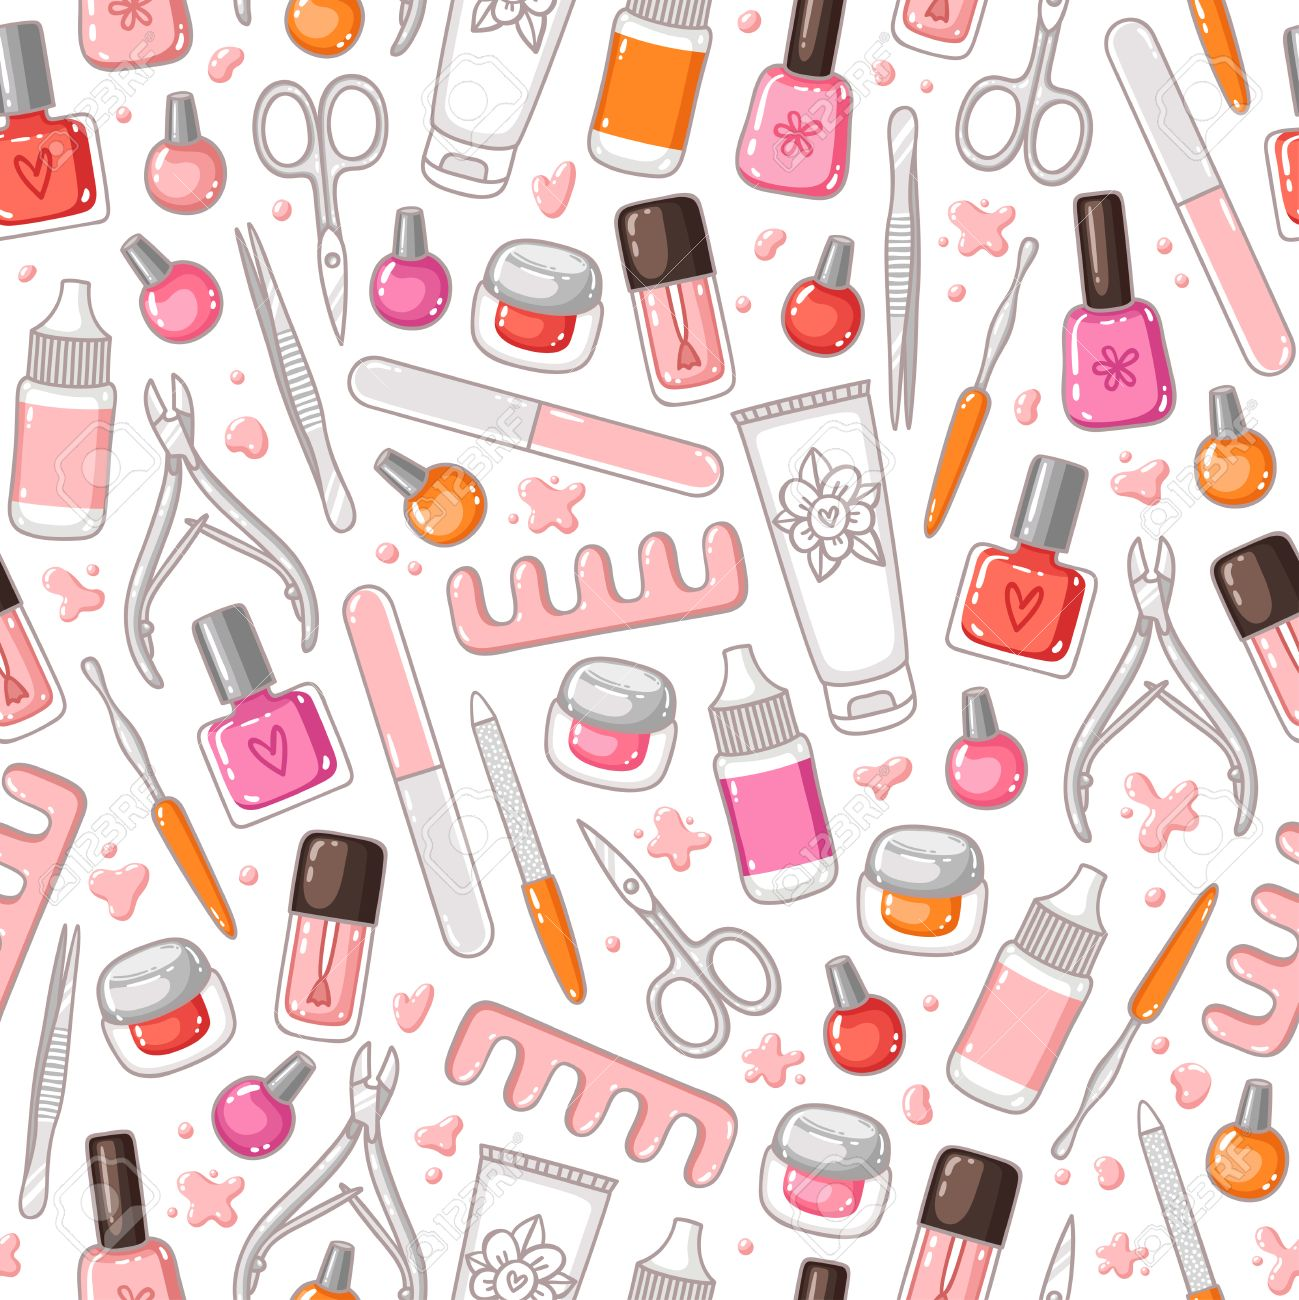 Manicure tools vector seamless pattern - 50494522